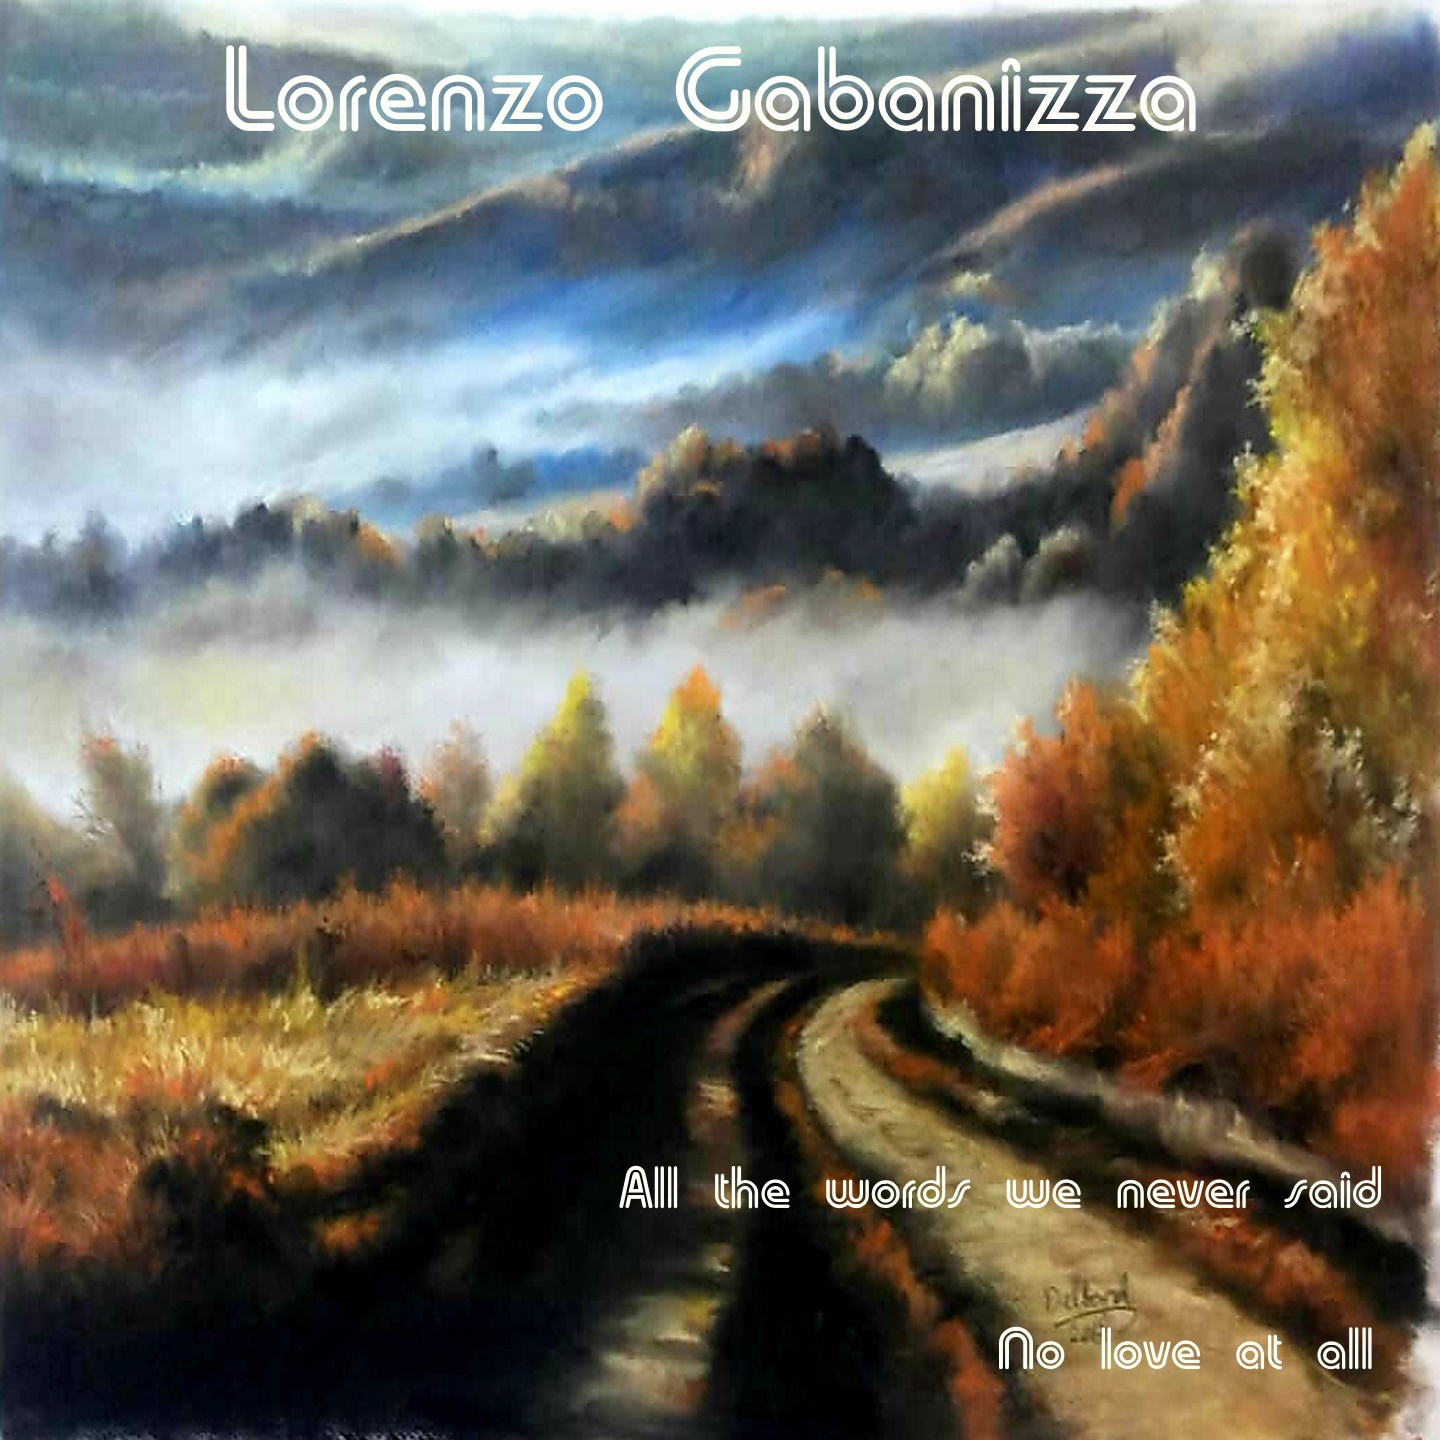 Lorenzo Gabanizza // All The Words We Never Said - single cover